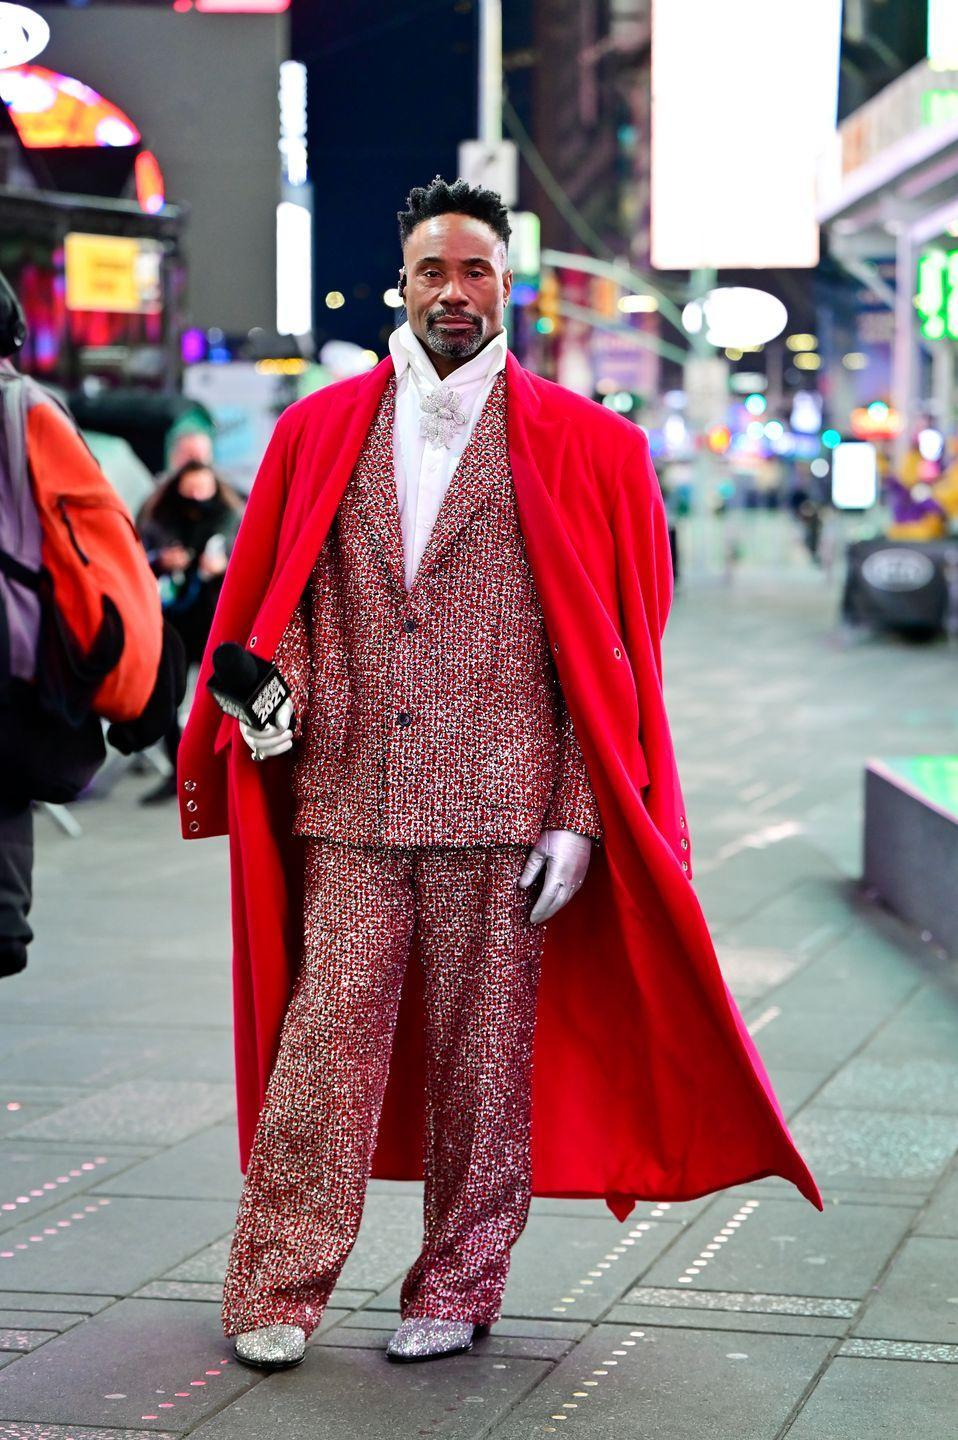 <p>The actor celebrated New Year's Eve in a Botter suit, a Ludovic de Saint Sernin coat, Giuseppe Zanotti shoes, Portolano gloves and a Lorraine Schwartz brooch. </p>